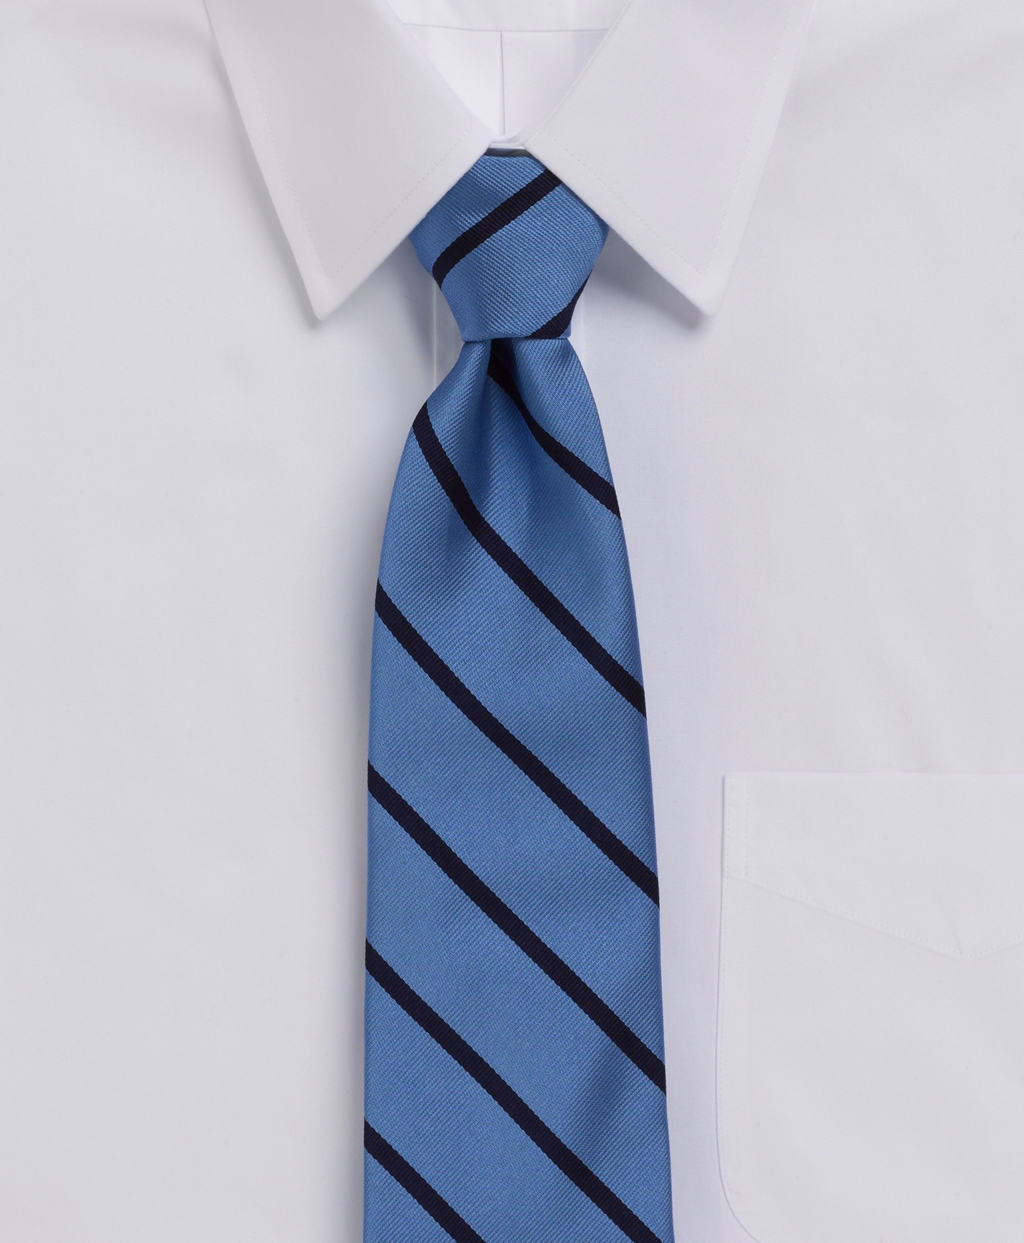 Looking for a tie similar to this